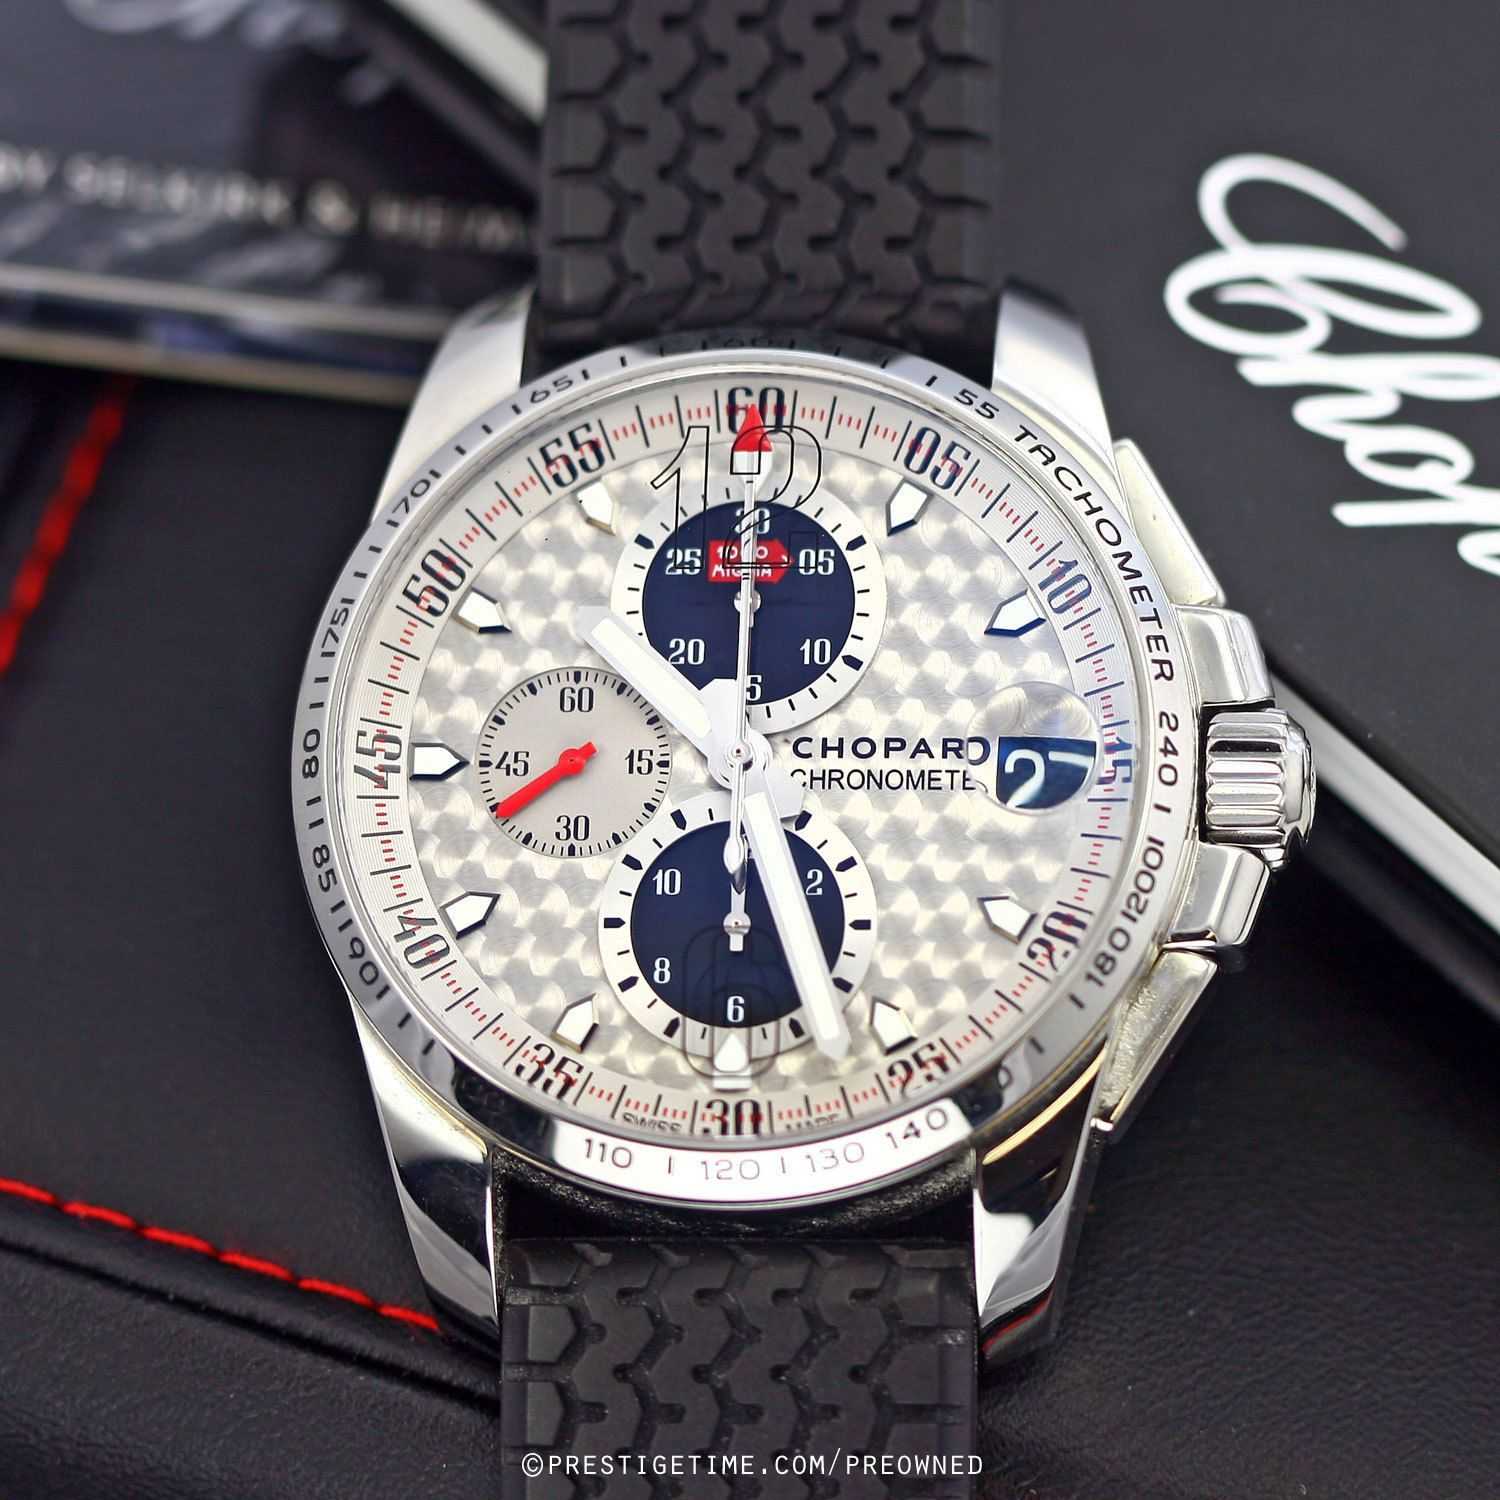 31db9306051 Pre-owned Chopard Mille Miglia Gran Turismo Chrono 168459-3019 in Gently  Used to Excellent Condition from The Most Trusted Name in Luxury Watches.